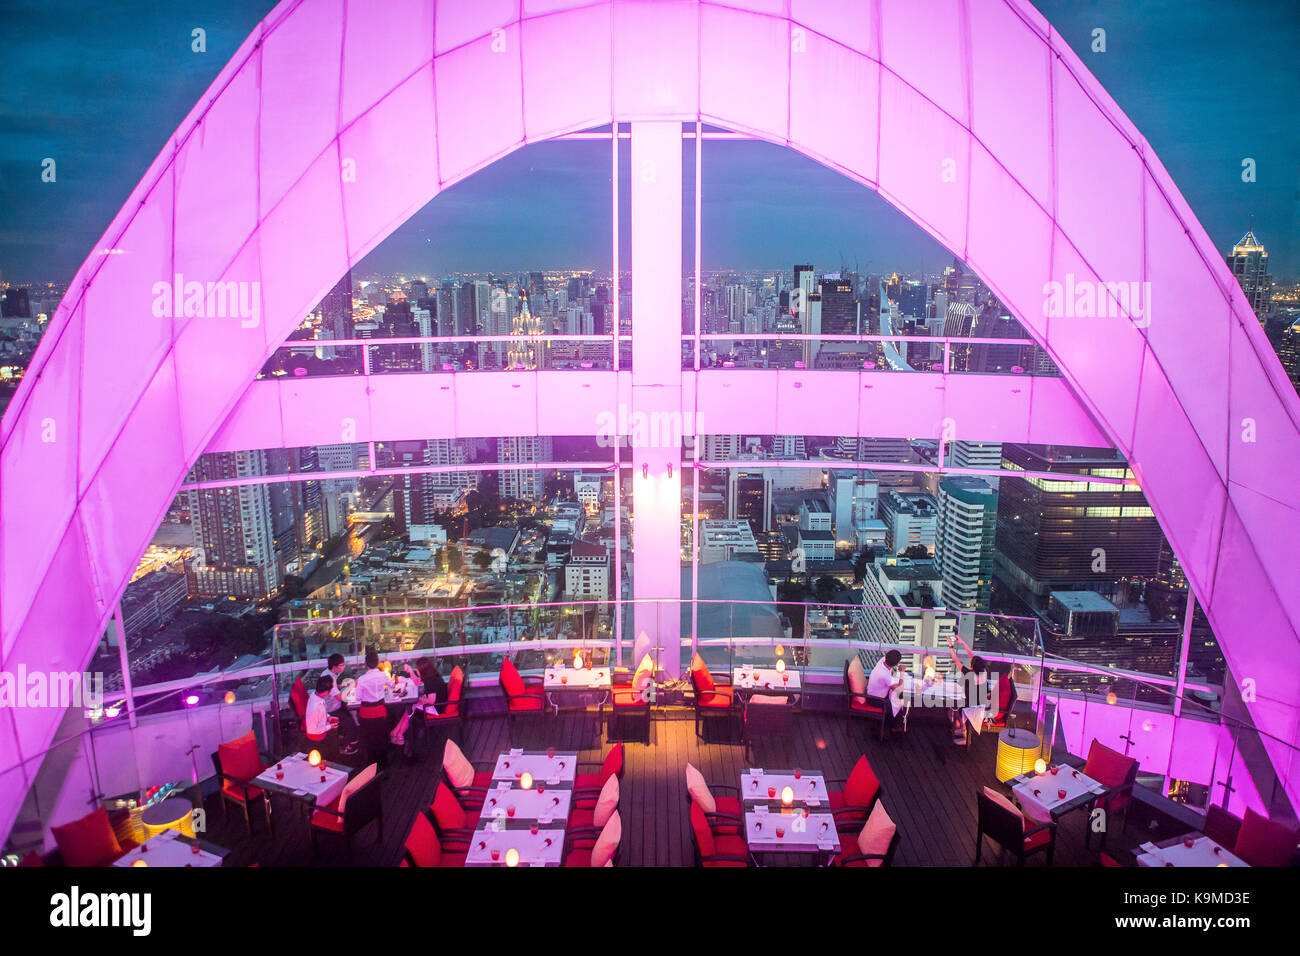 Red Sky Restaurant Rooftop. Bangkok. Thailand. On the top floor of the Centara Grand skyscraper in the city centre - Stock Image